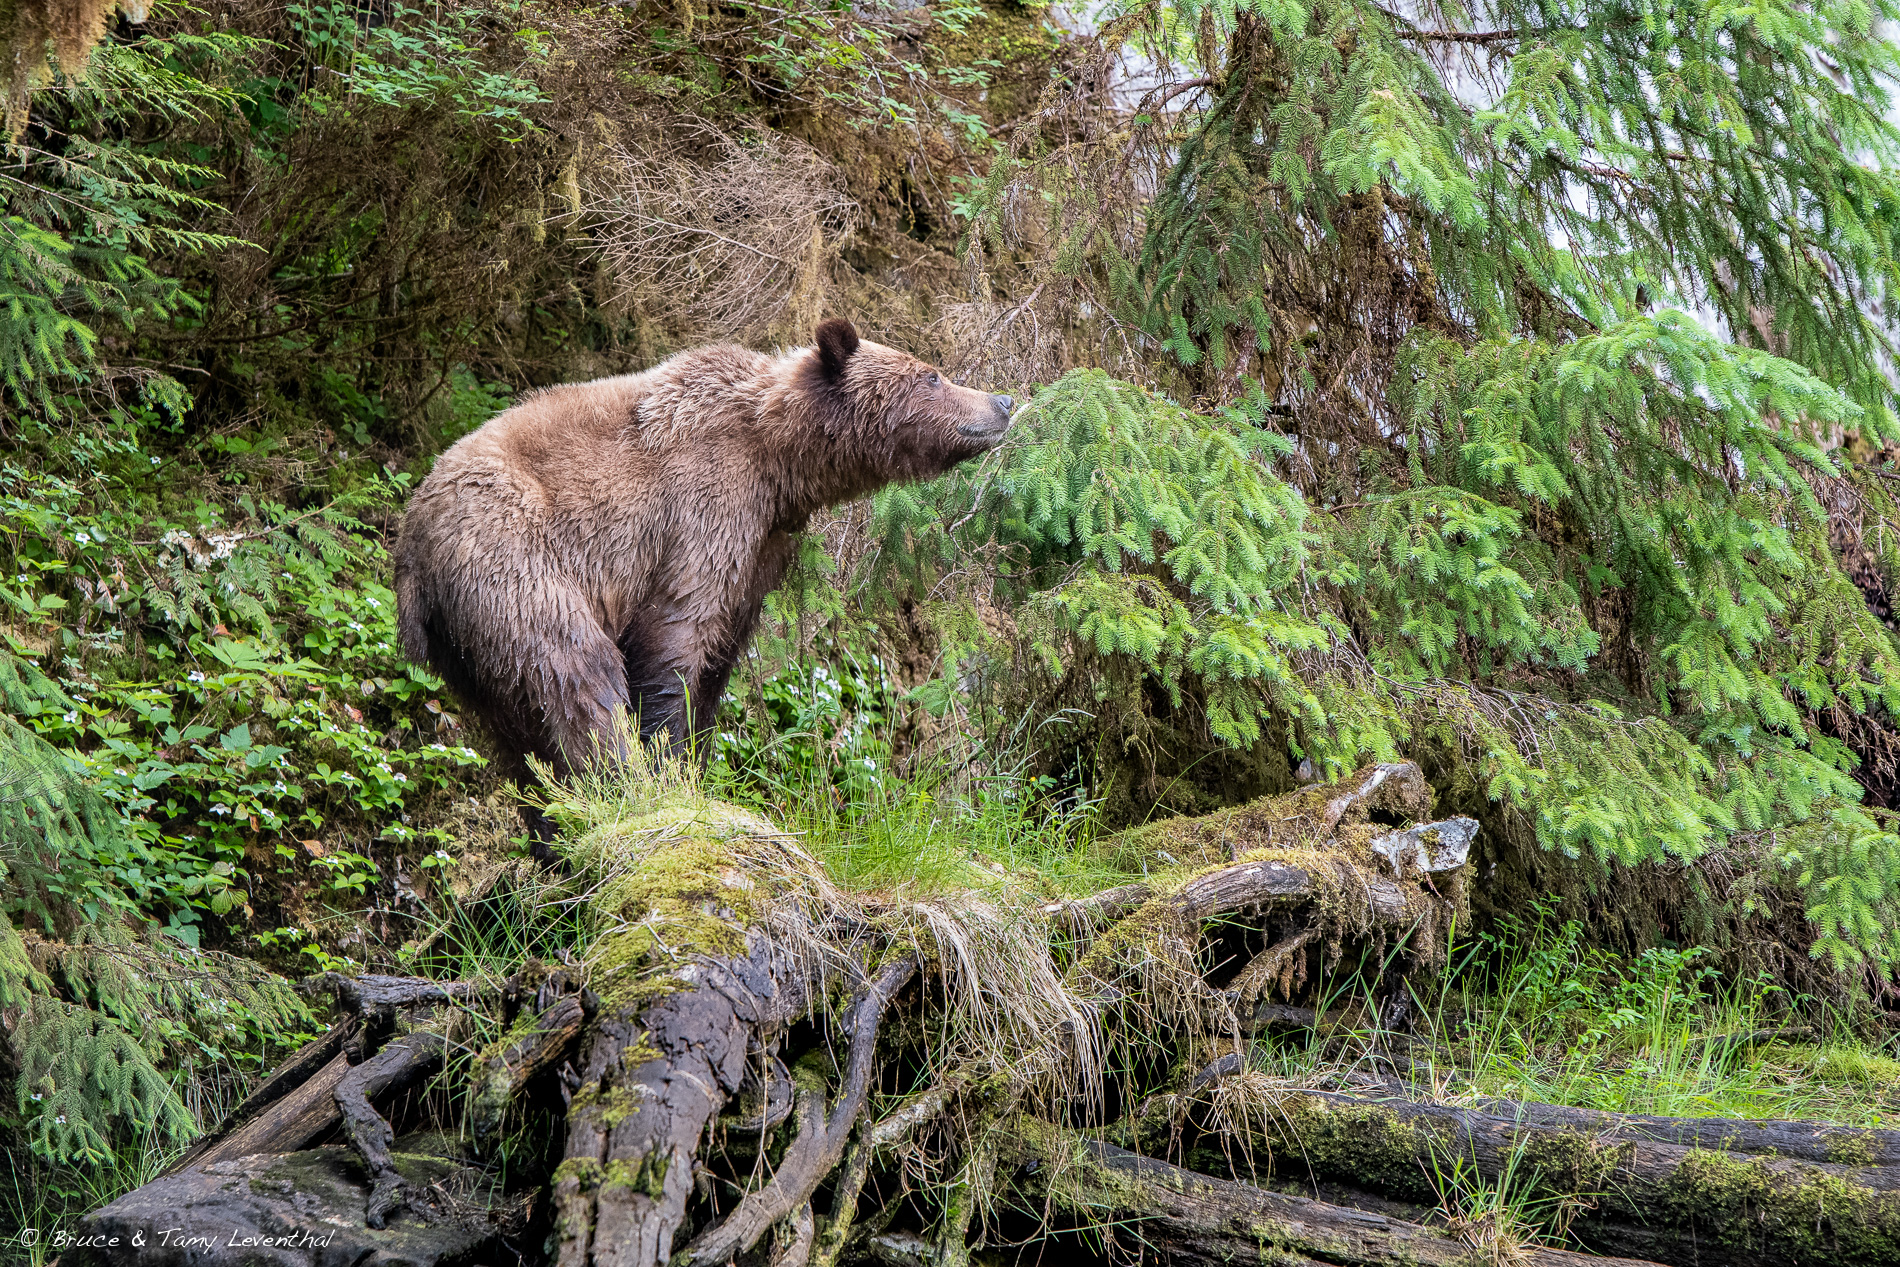 Grizzly Bear - Khutzeymateen Provincial Park, British Columbia Canada